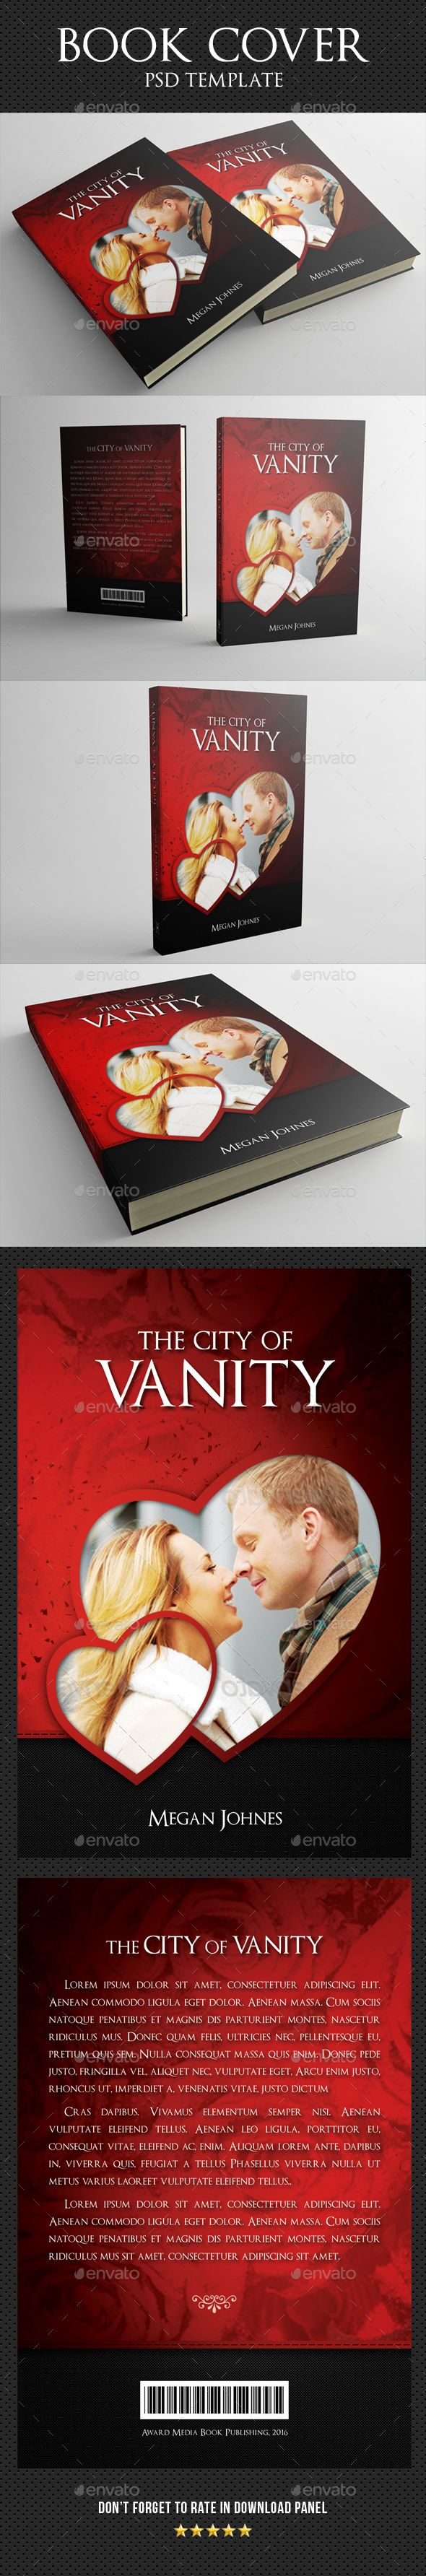 Book Cover Template 12 — Photoshop PSD #book cover #book • Available here → https://graphicriver.net/item/book-cover-template-12/15834927?ref=pxcr